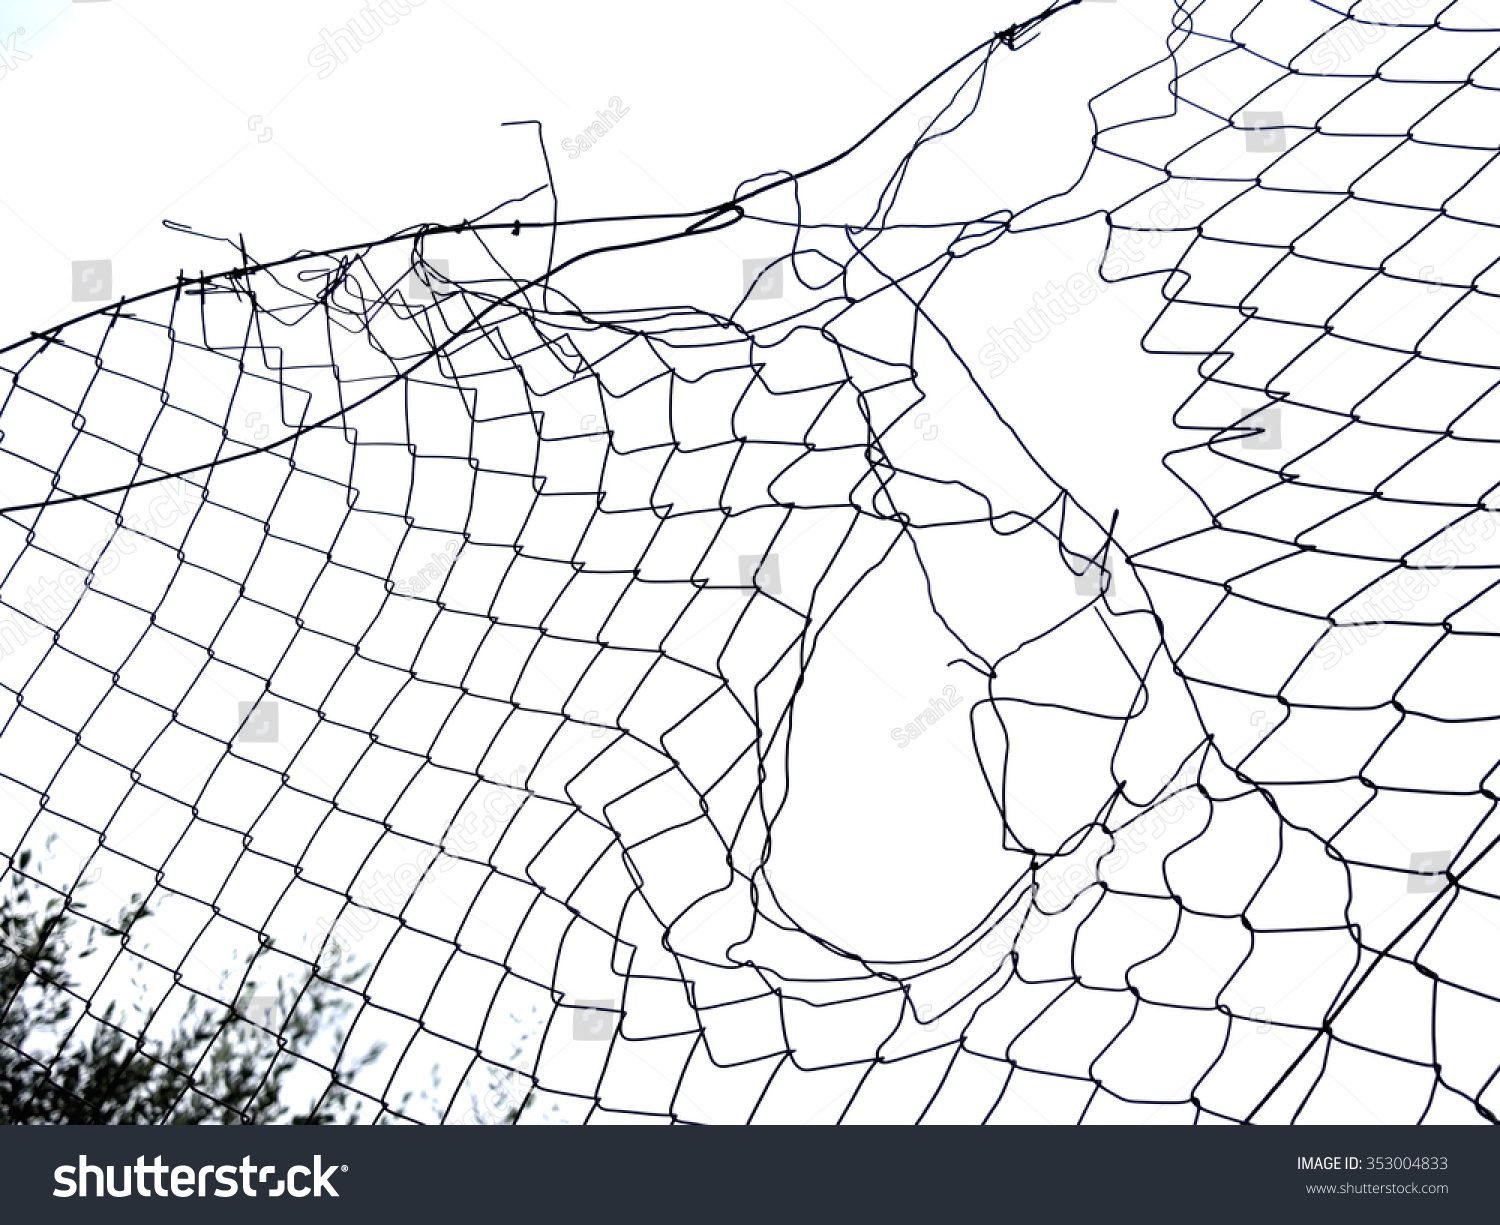 Royalty-free Hole, gap in the wire mesh fence, white… #353004833 ...